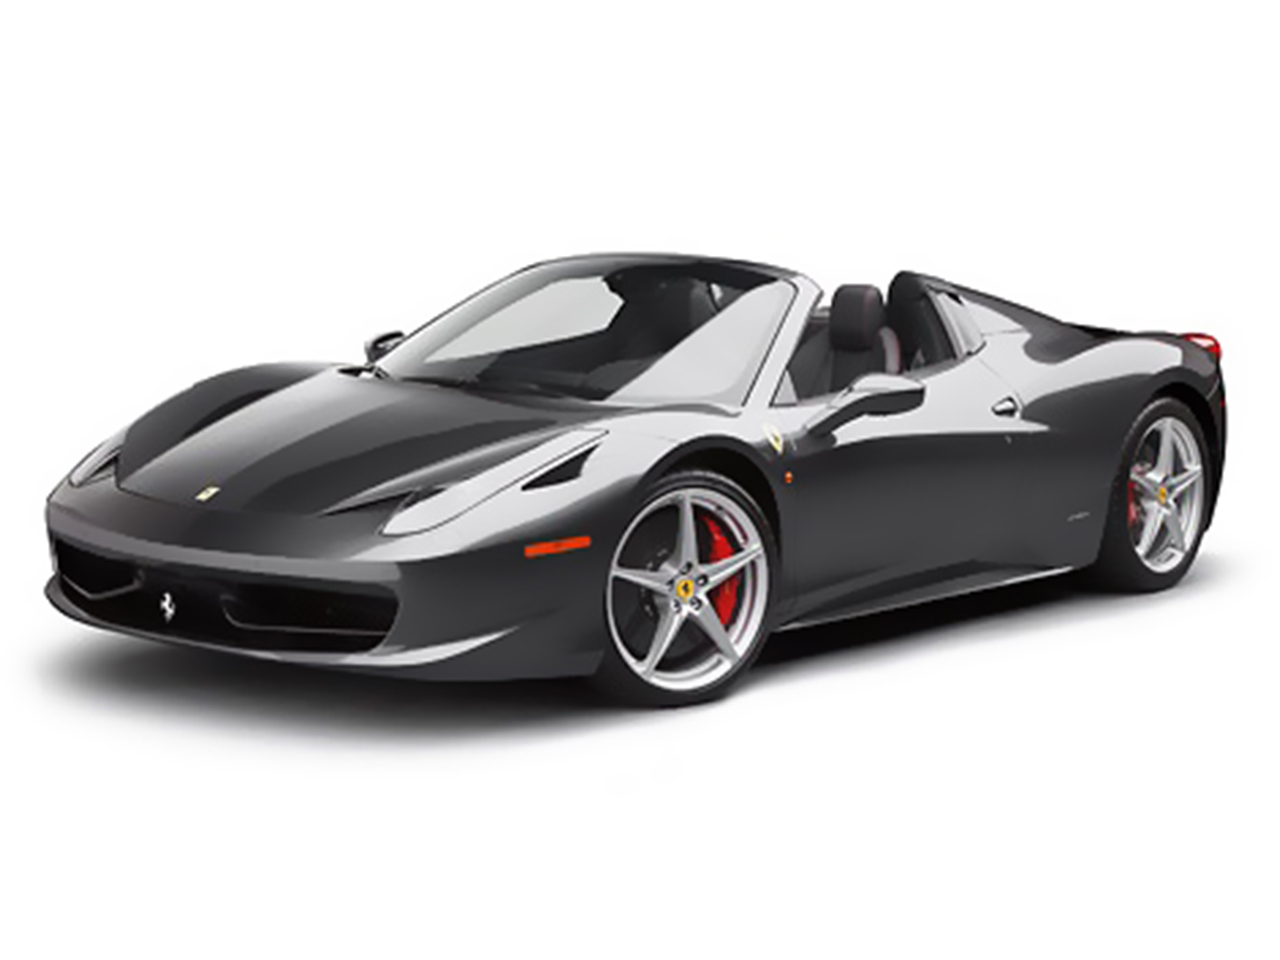 2018 ferrari 458 prices in saudi arabia gulf specs